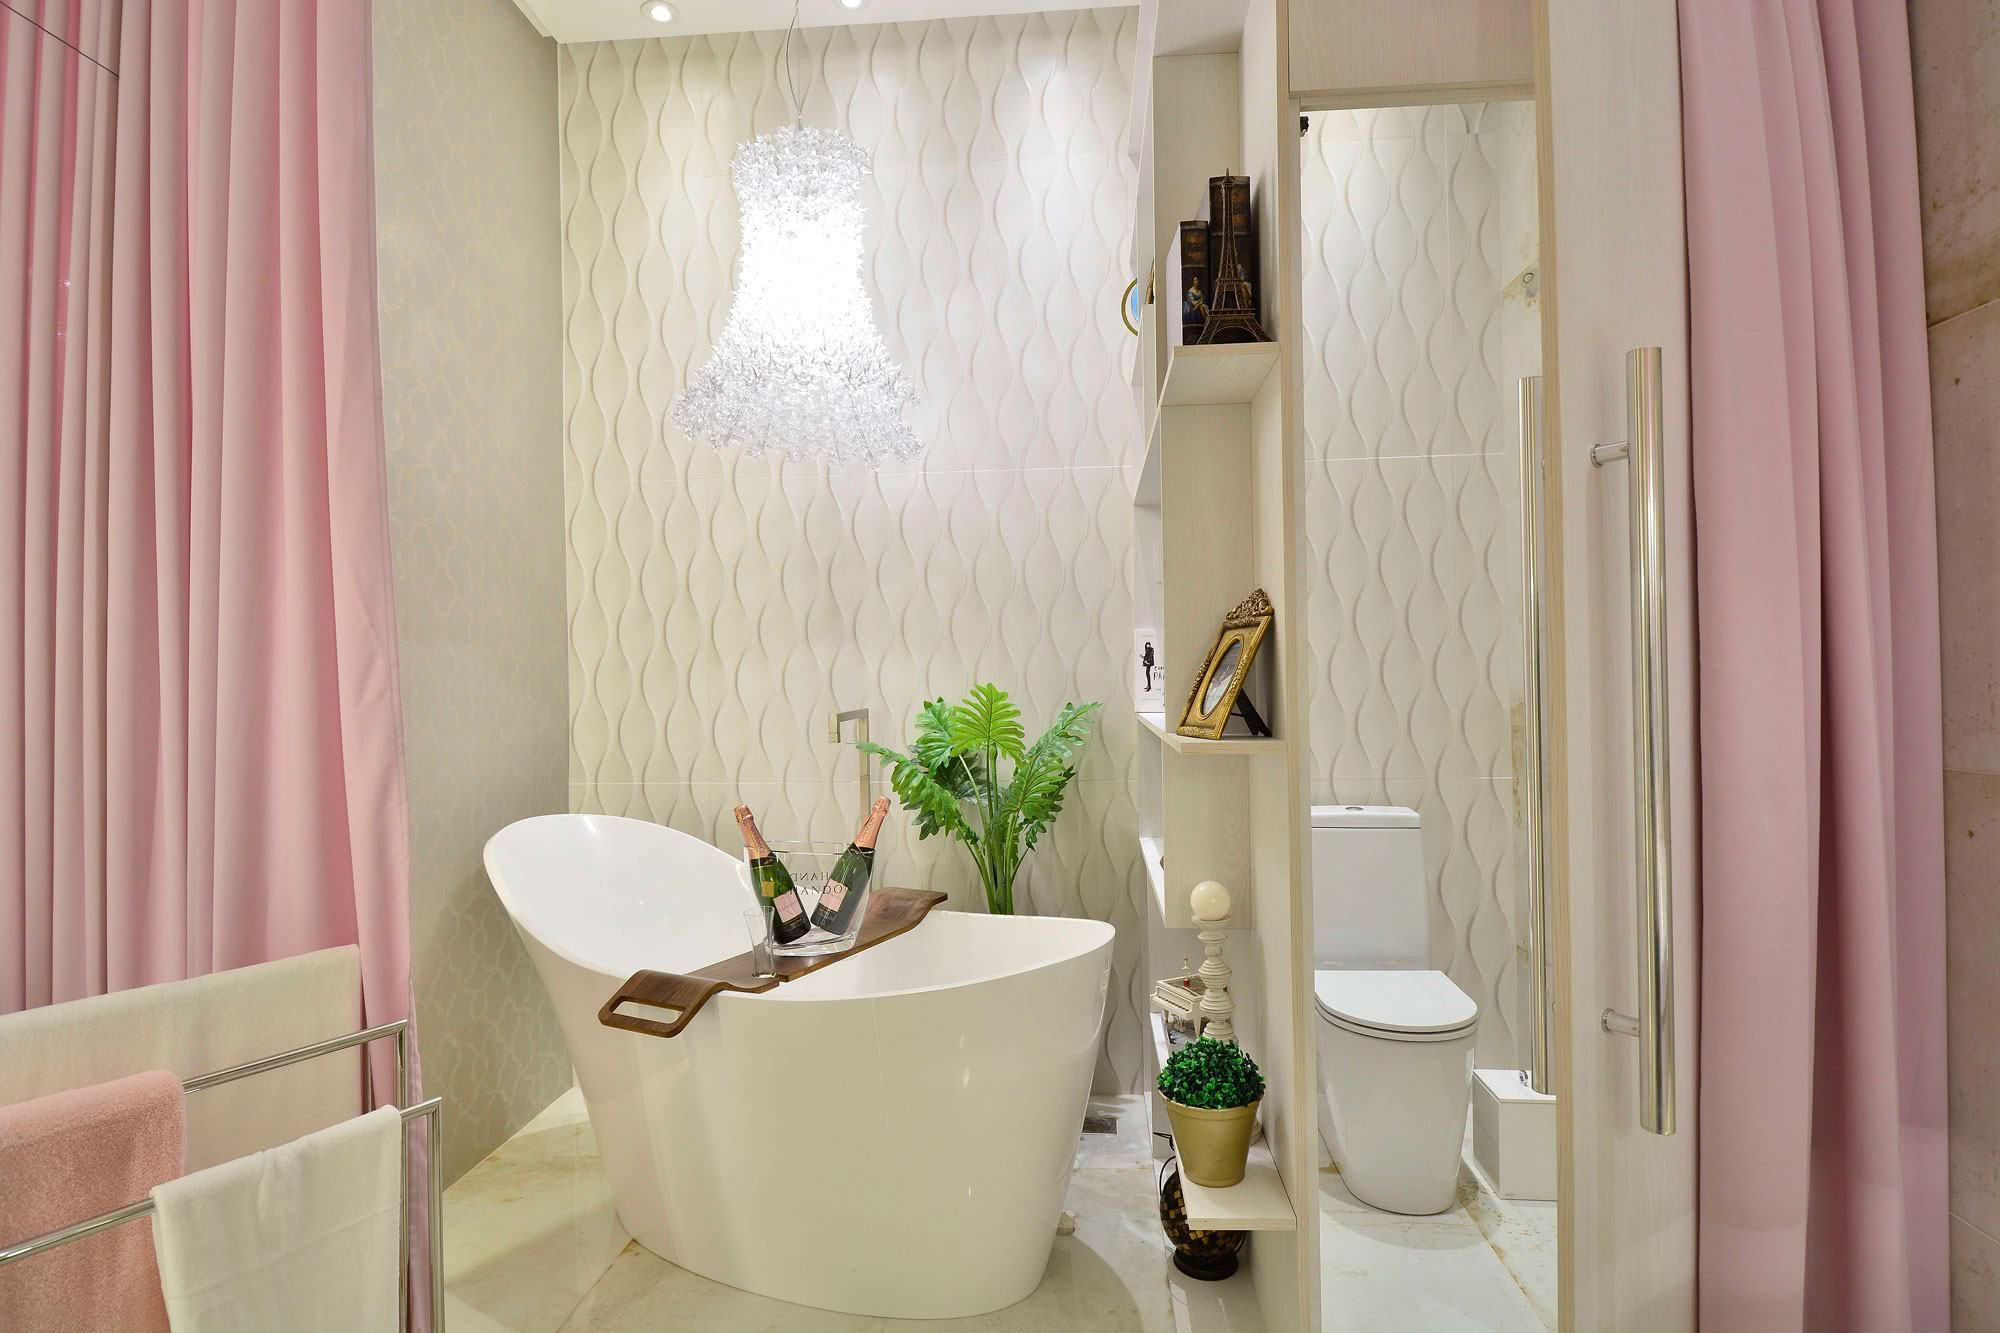 Get inspired in the Pink bathroom with clean footprint